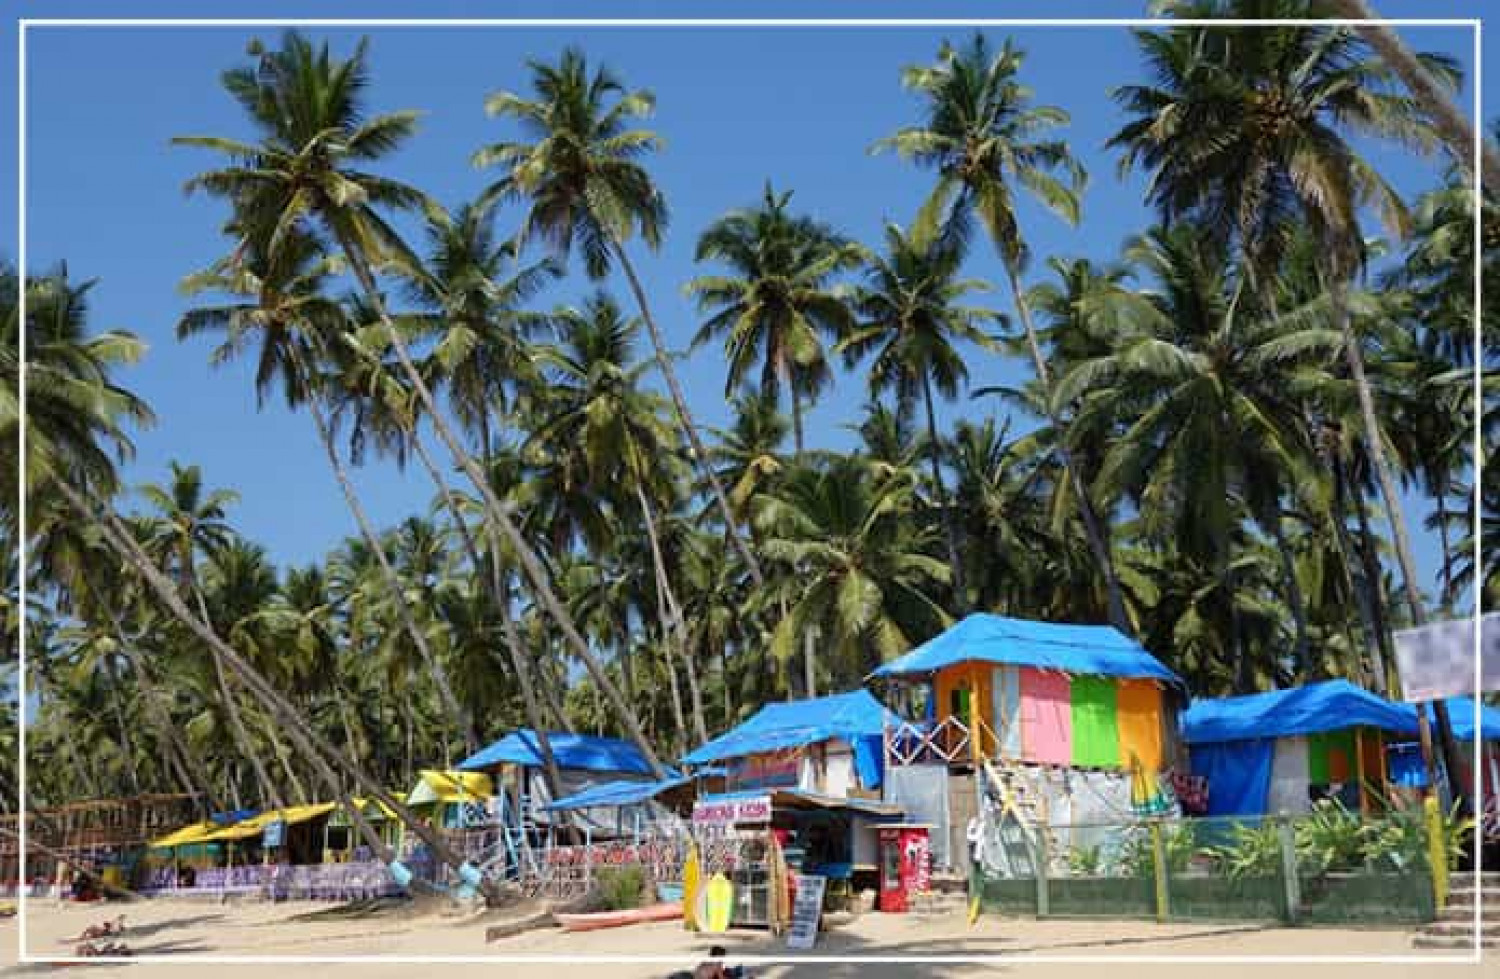 Goa Is Your Dream Destination? Here Are The Best And Less Expensive Beaches In South Goa Must Visit Infographic